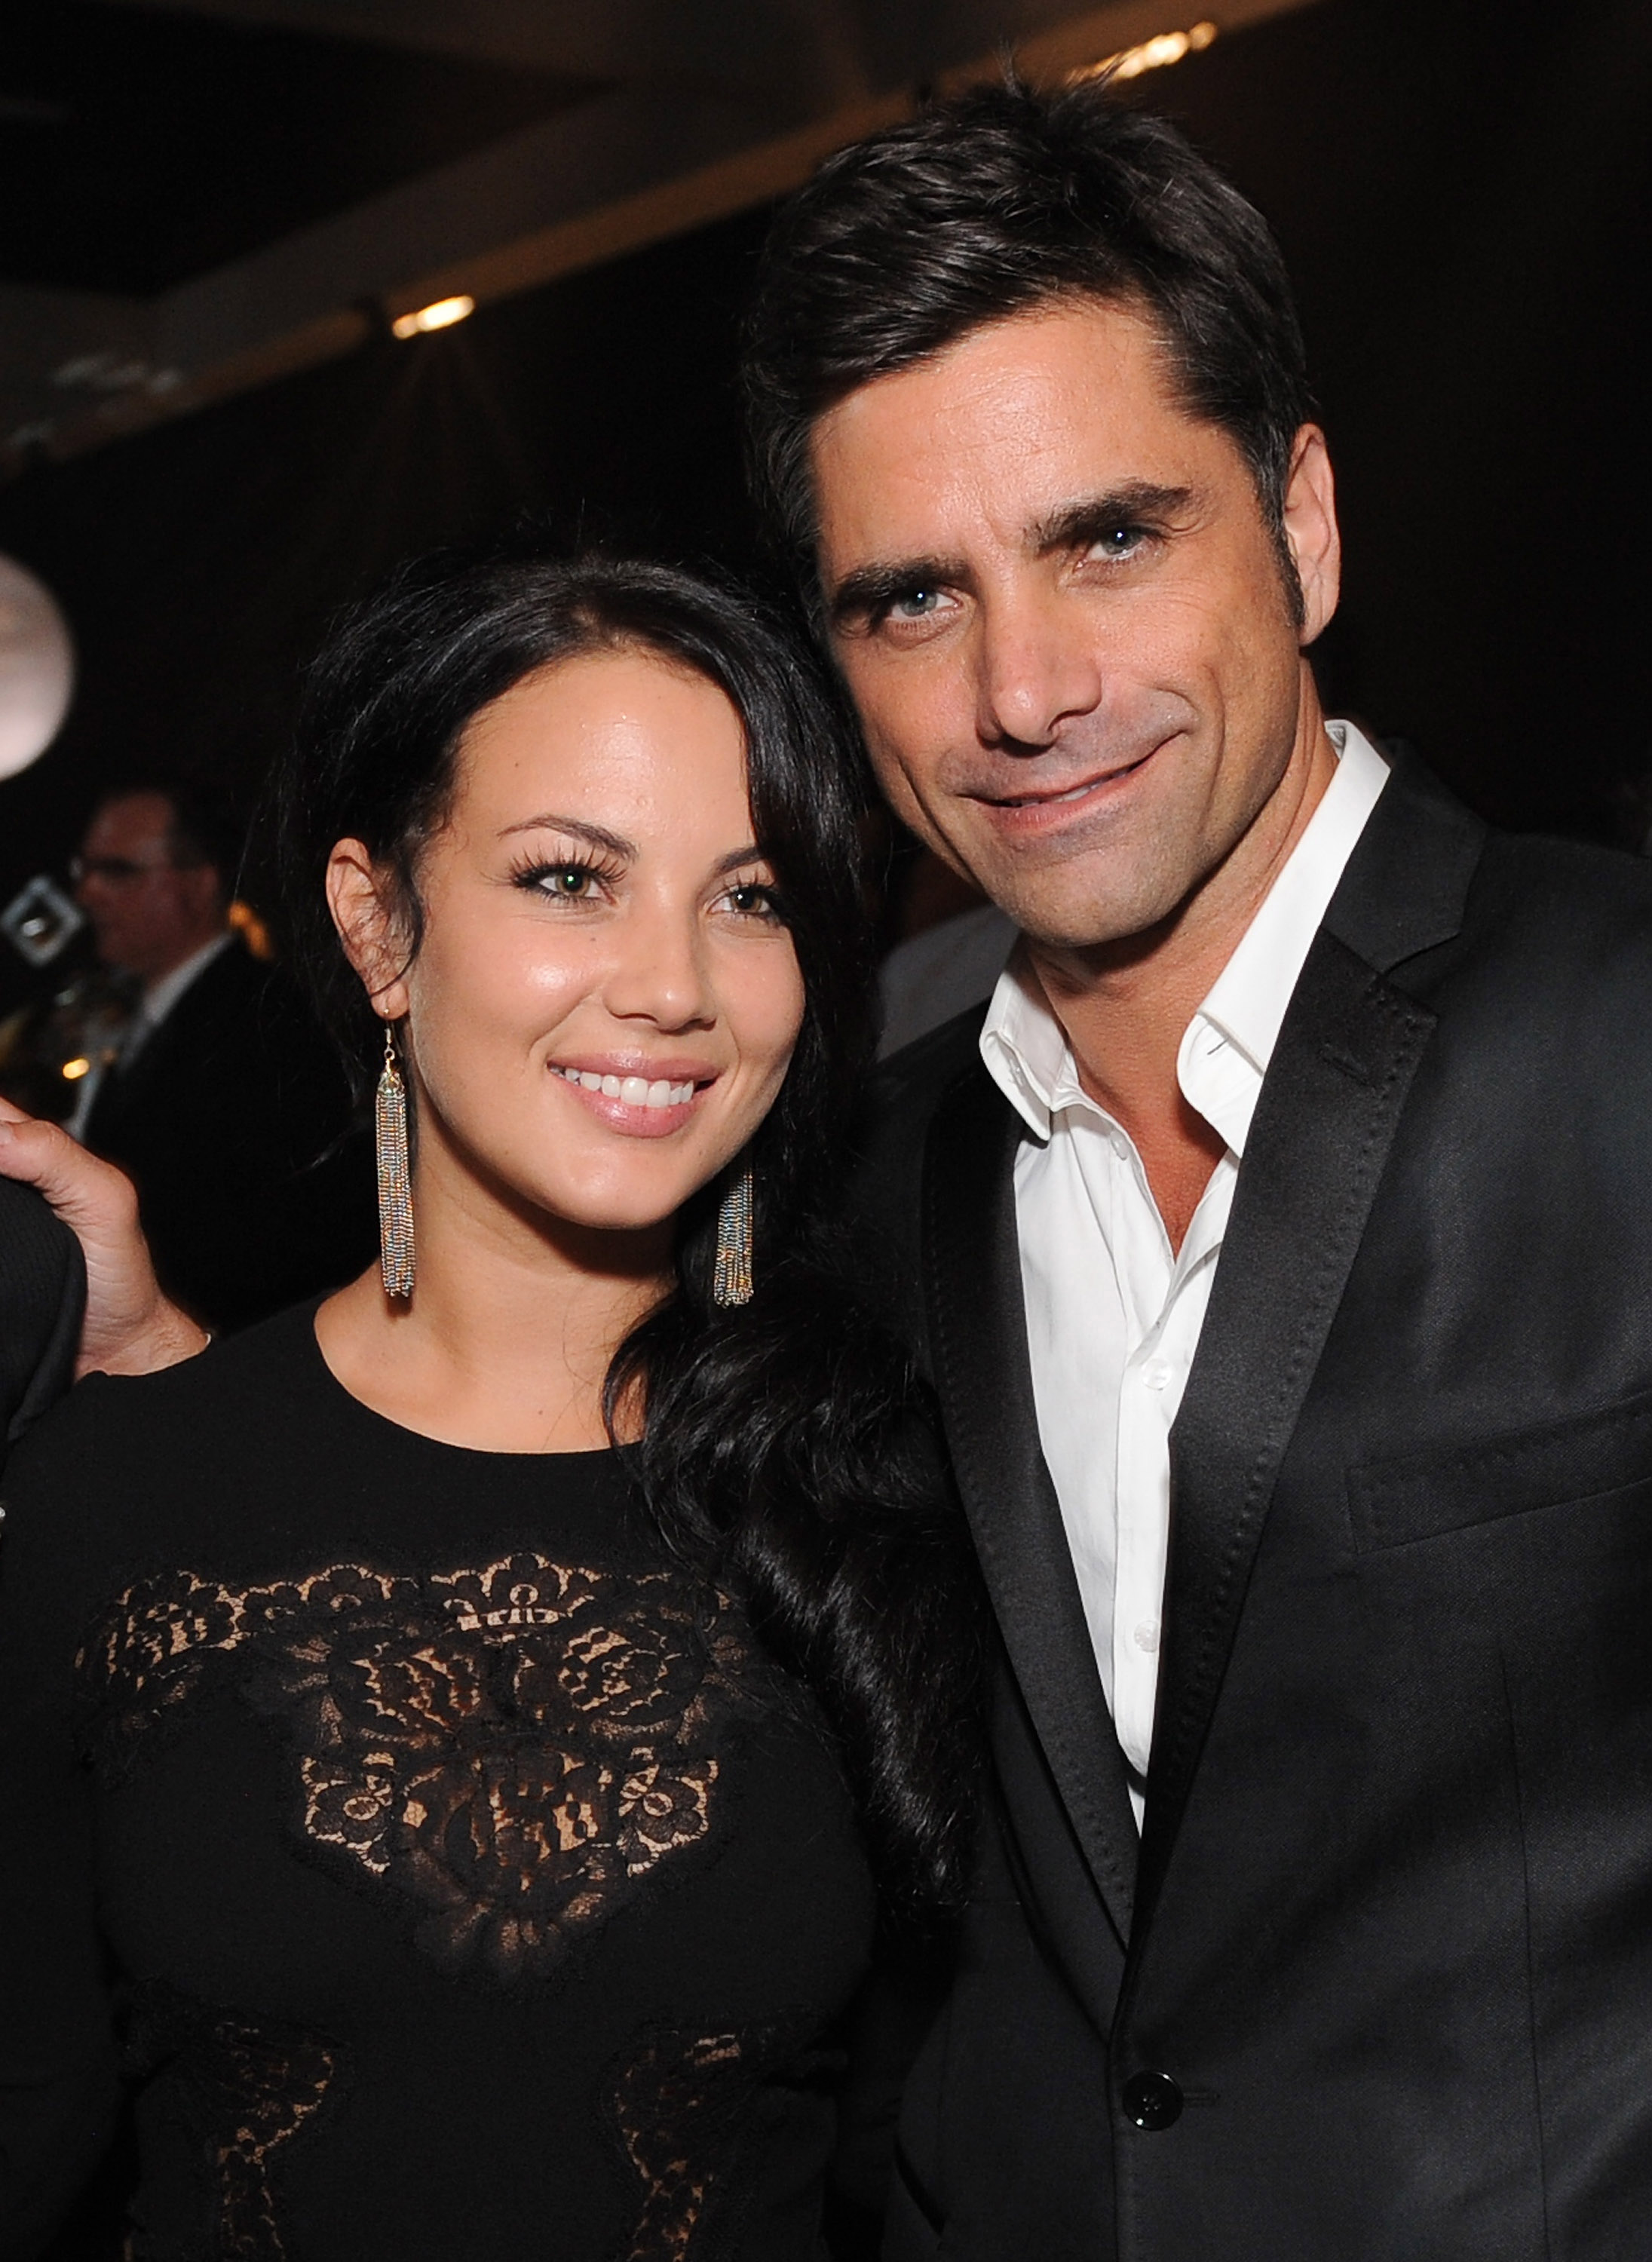 John Stamos brings a guest to the Emmy's Governor's Ball.